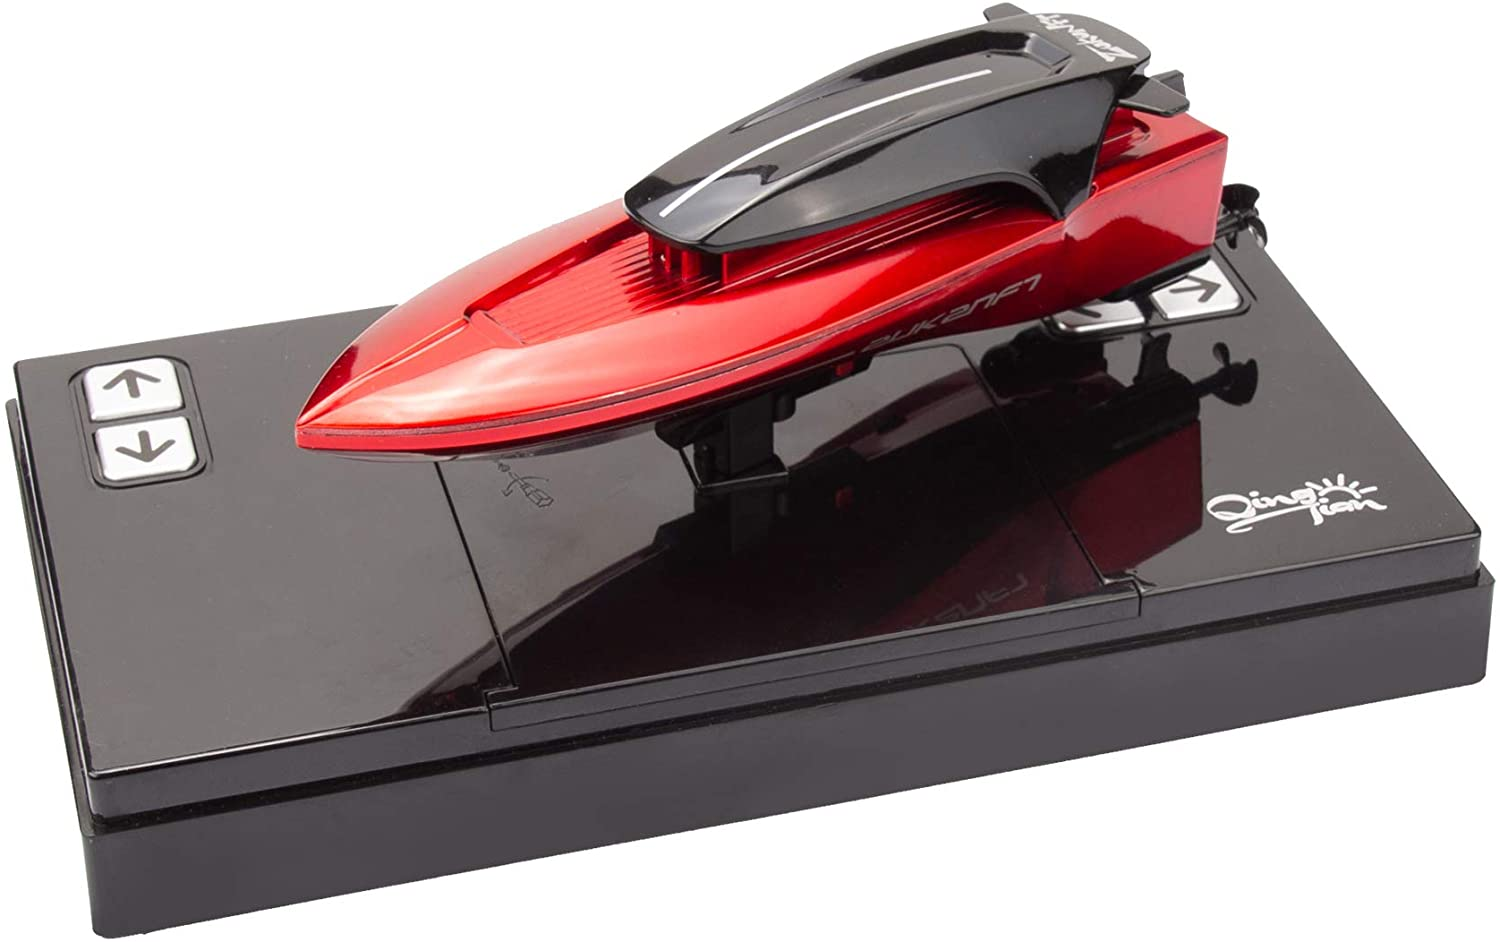 Mini RC Boat Remote Control Toys for Kids Pool or Lake Child Protection Function 888C red